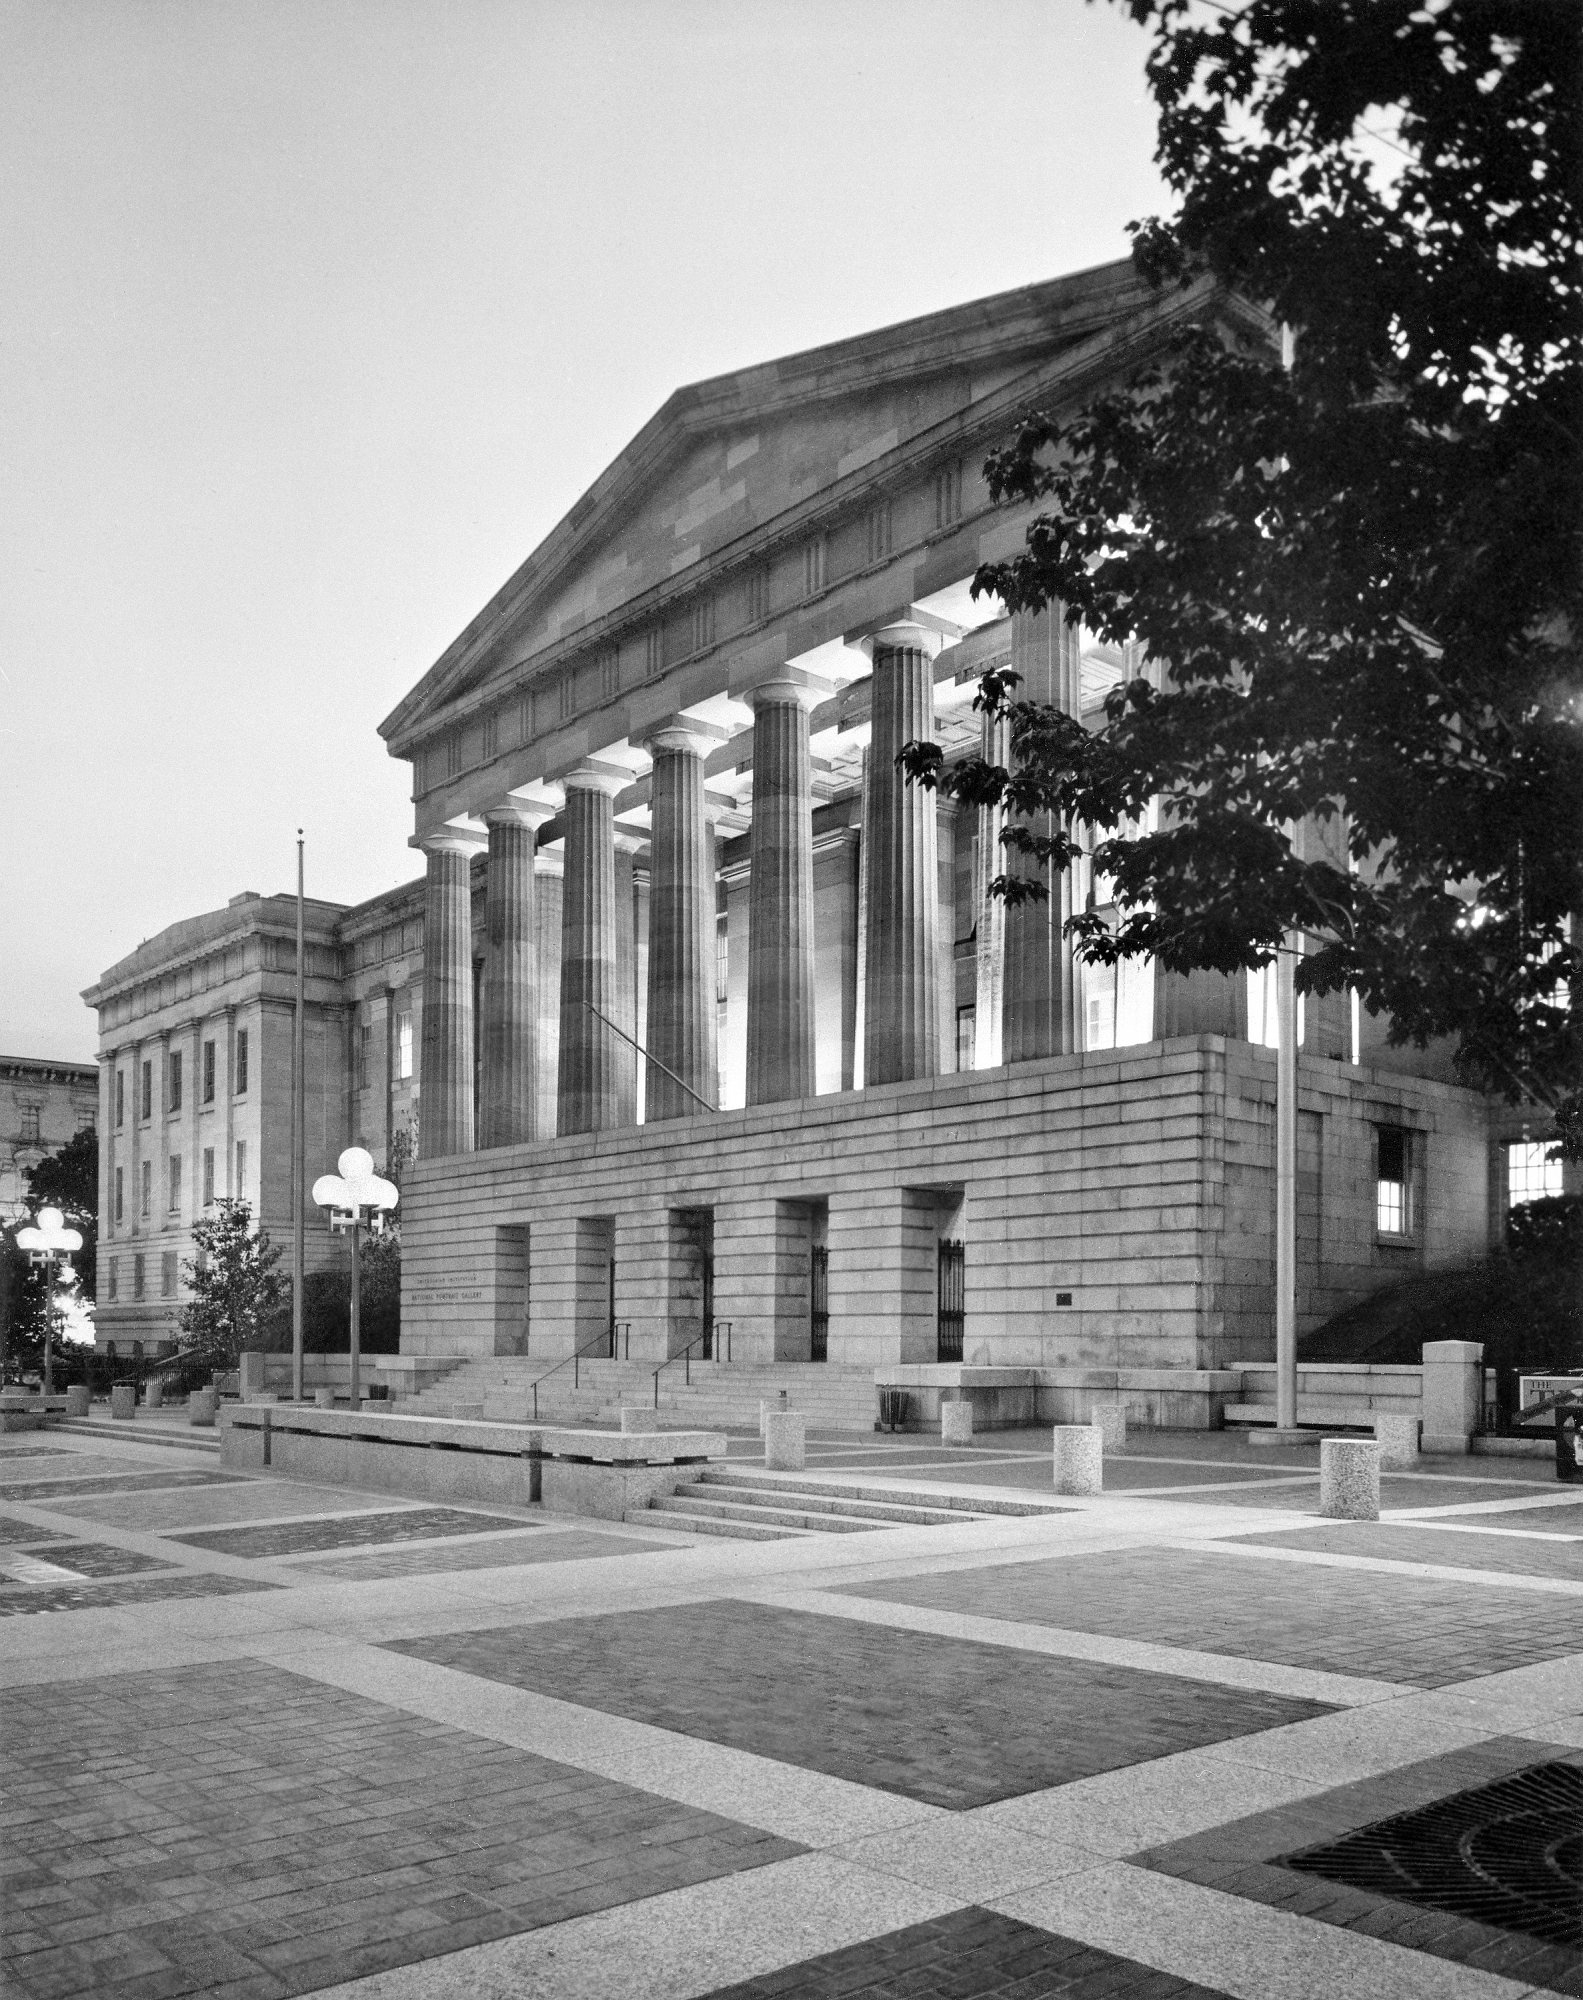 From the southeast, an evening view of the exterior of the National Portrait Gallery's side of the American Art and Portrait Galleries' building. Smithsonian Institution Archives, Record Unit 371, Box 2, Folder: October 1978.